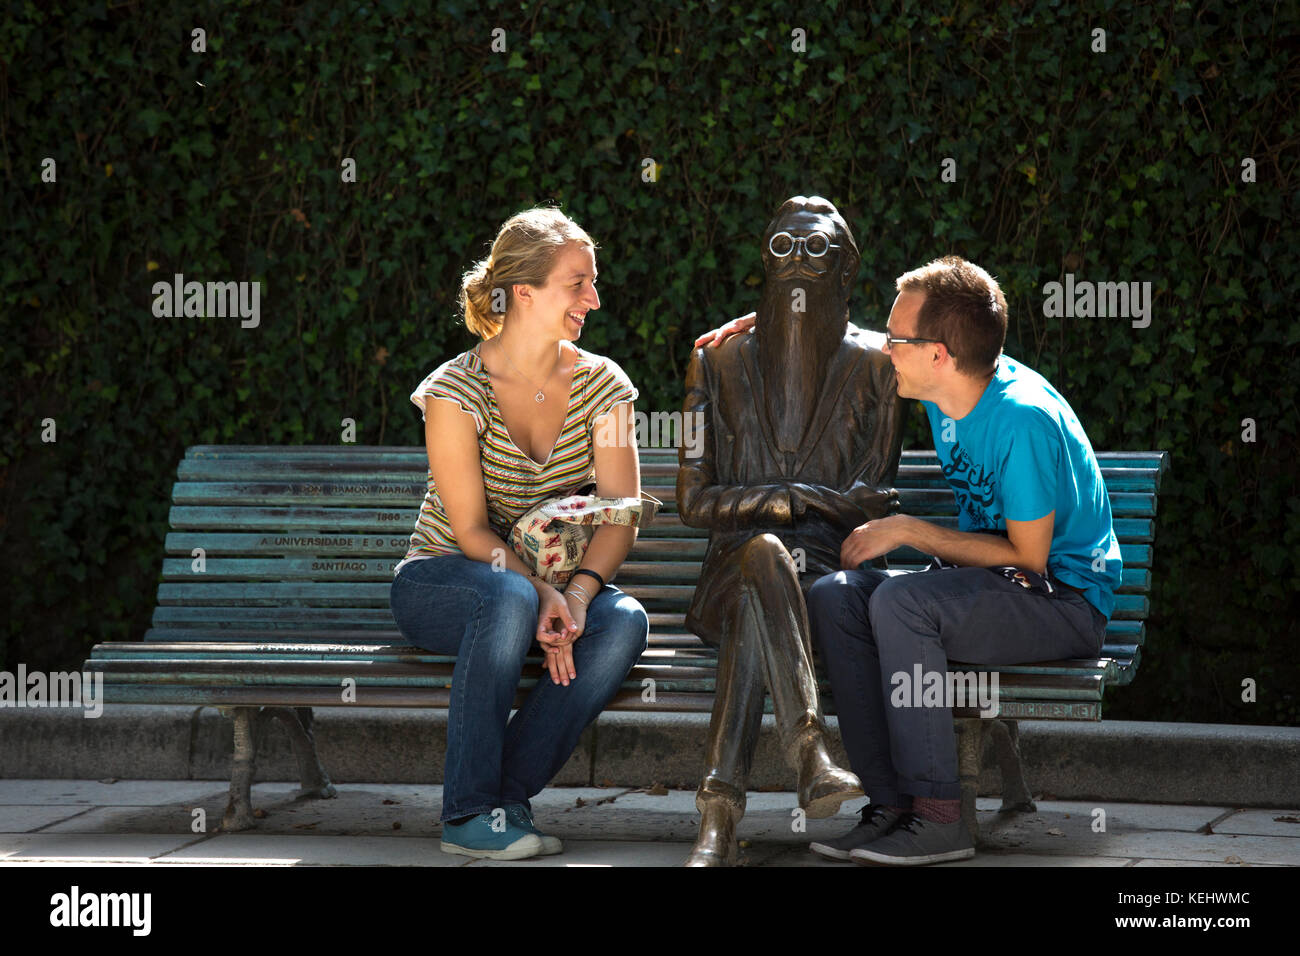 People sit on bench with bronze statue of Don Ramon Maria Del Valle-Inclan by sculptor Cesar Lombera in Alamada Stock Photo